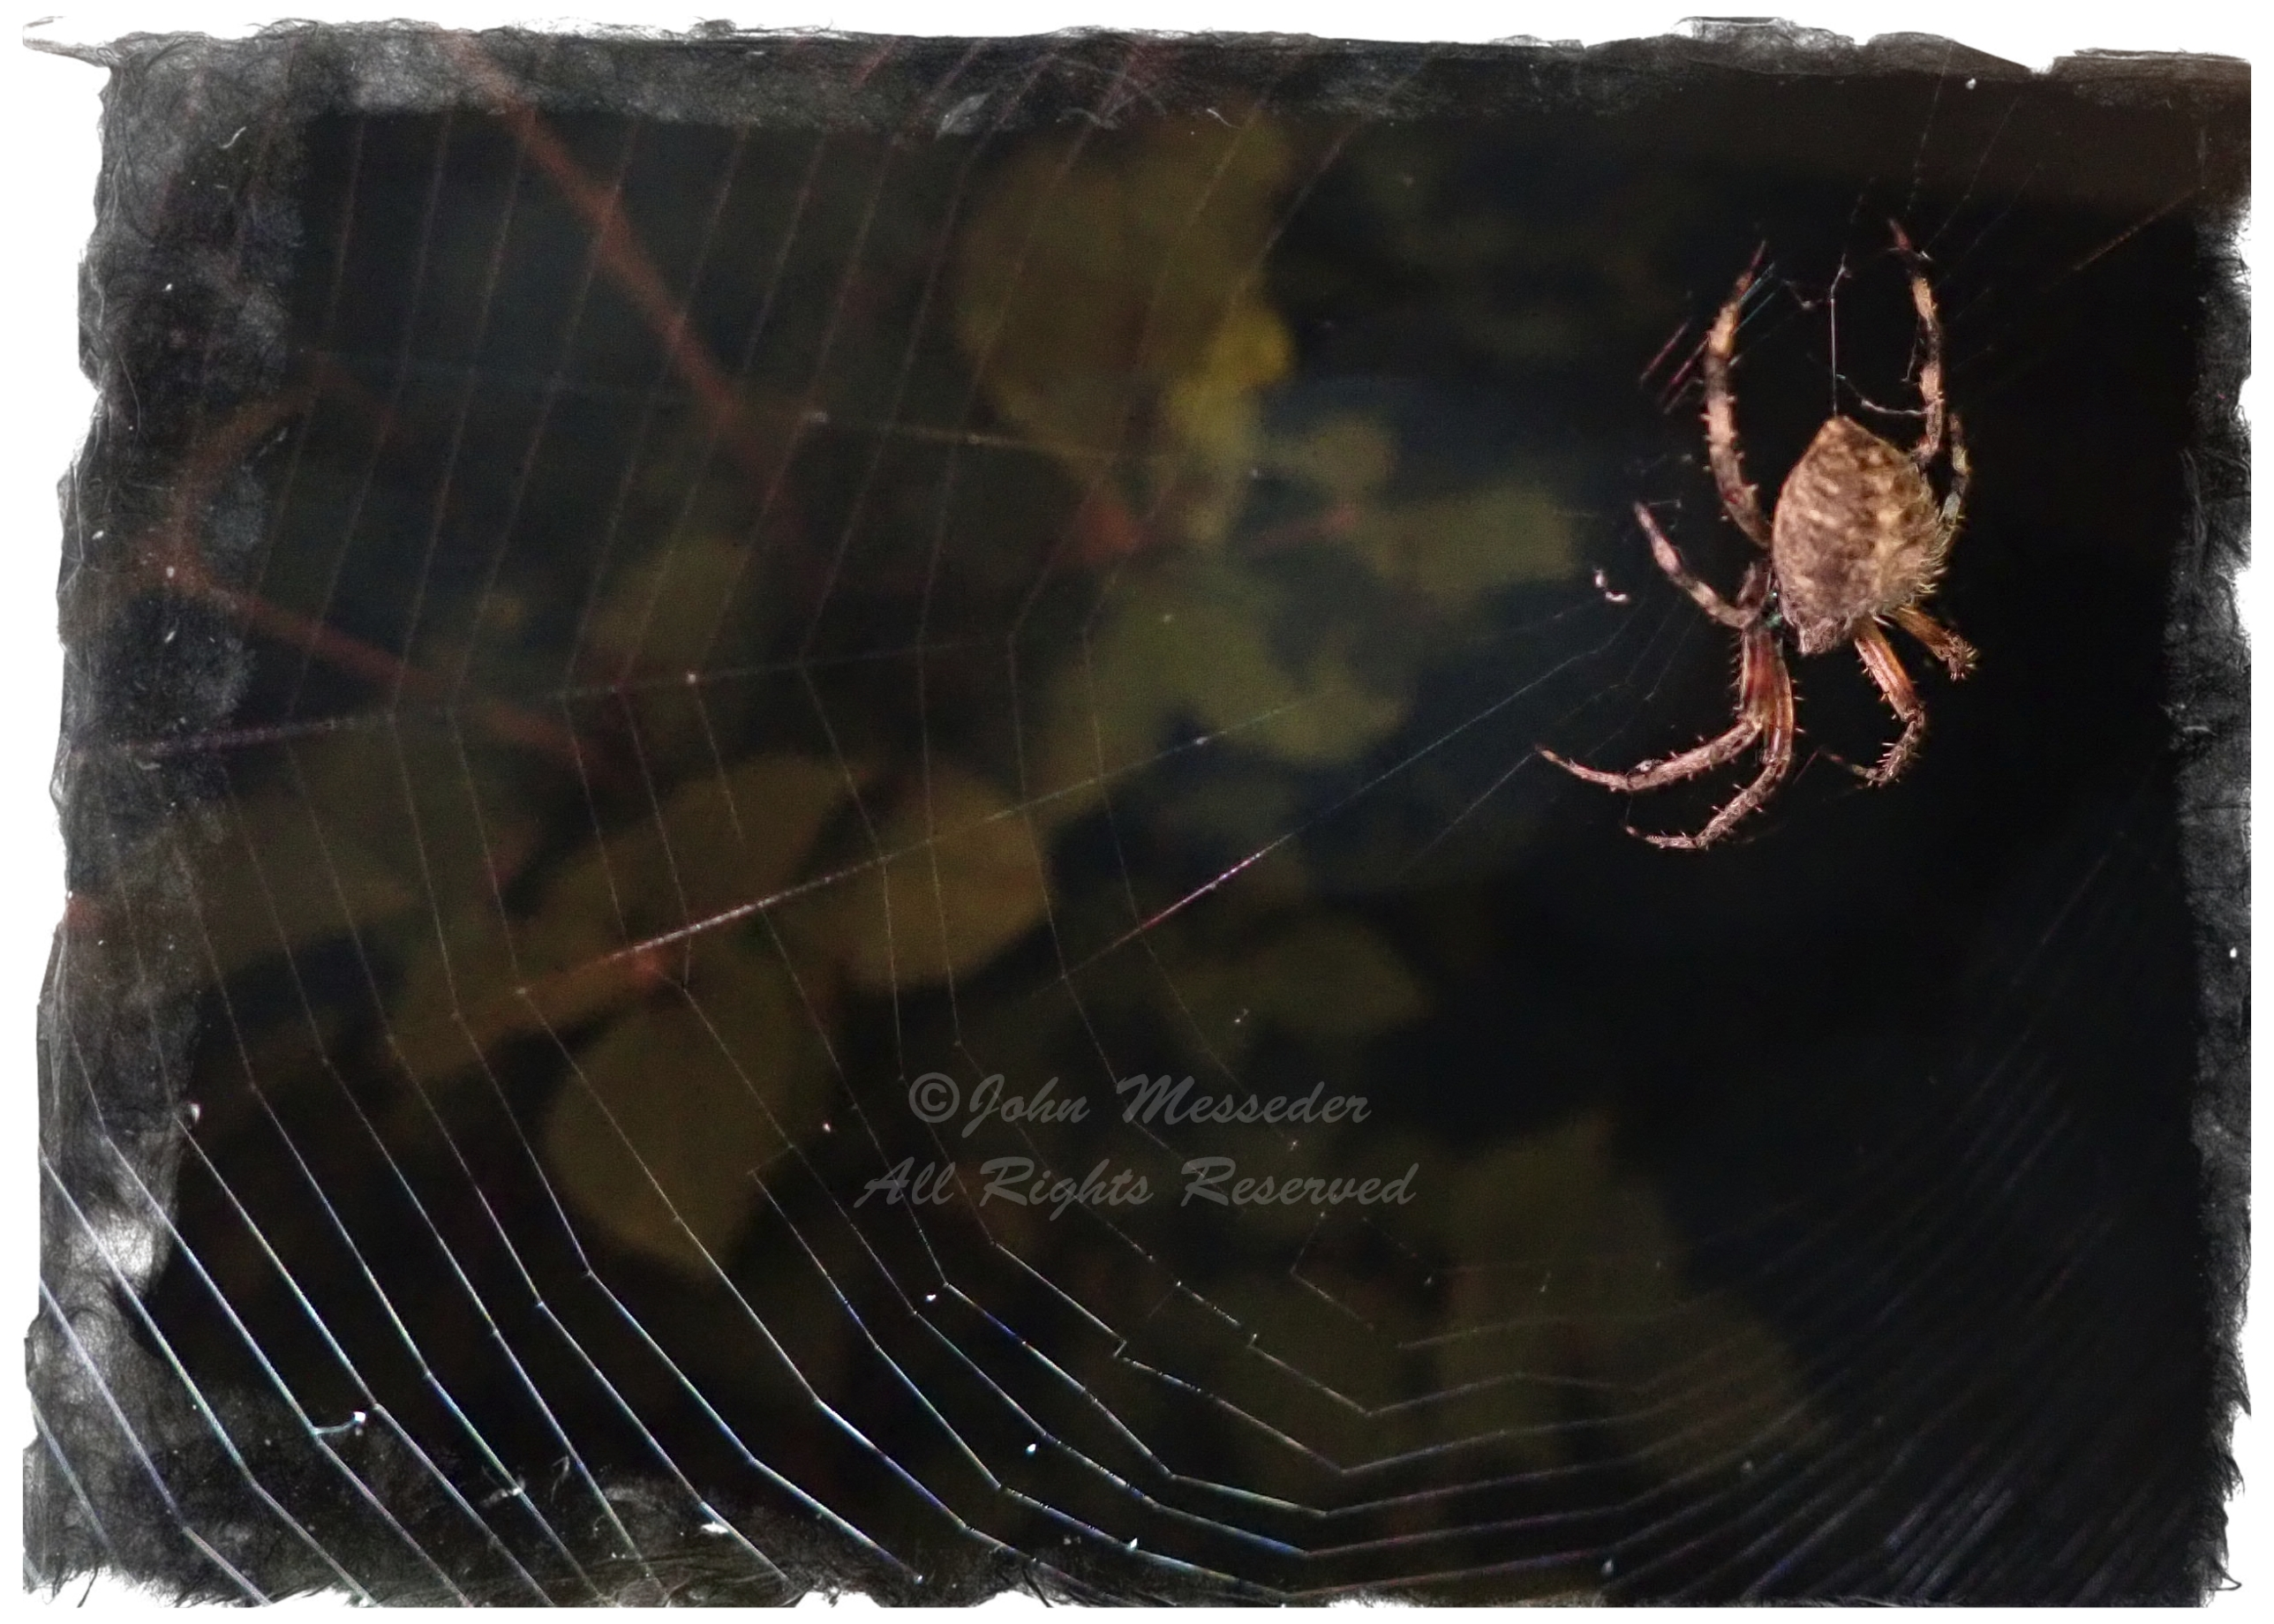 Her eight sensors strategically plugged into the web, Ms. Spider awaits the arrival of dinner.